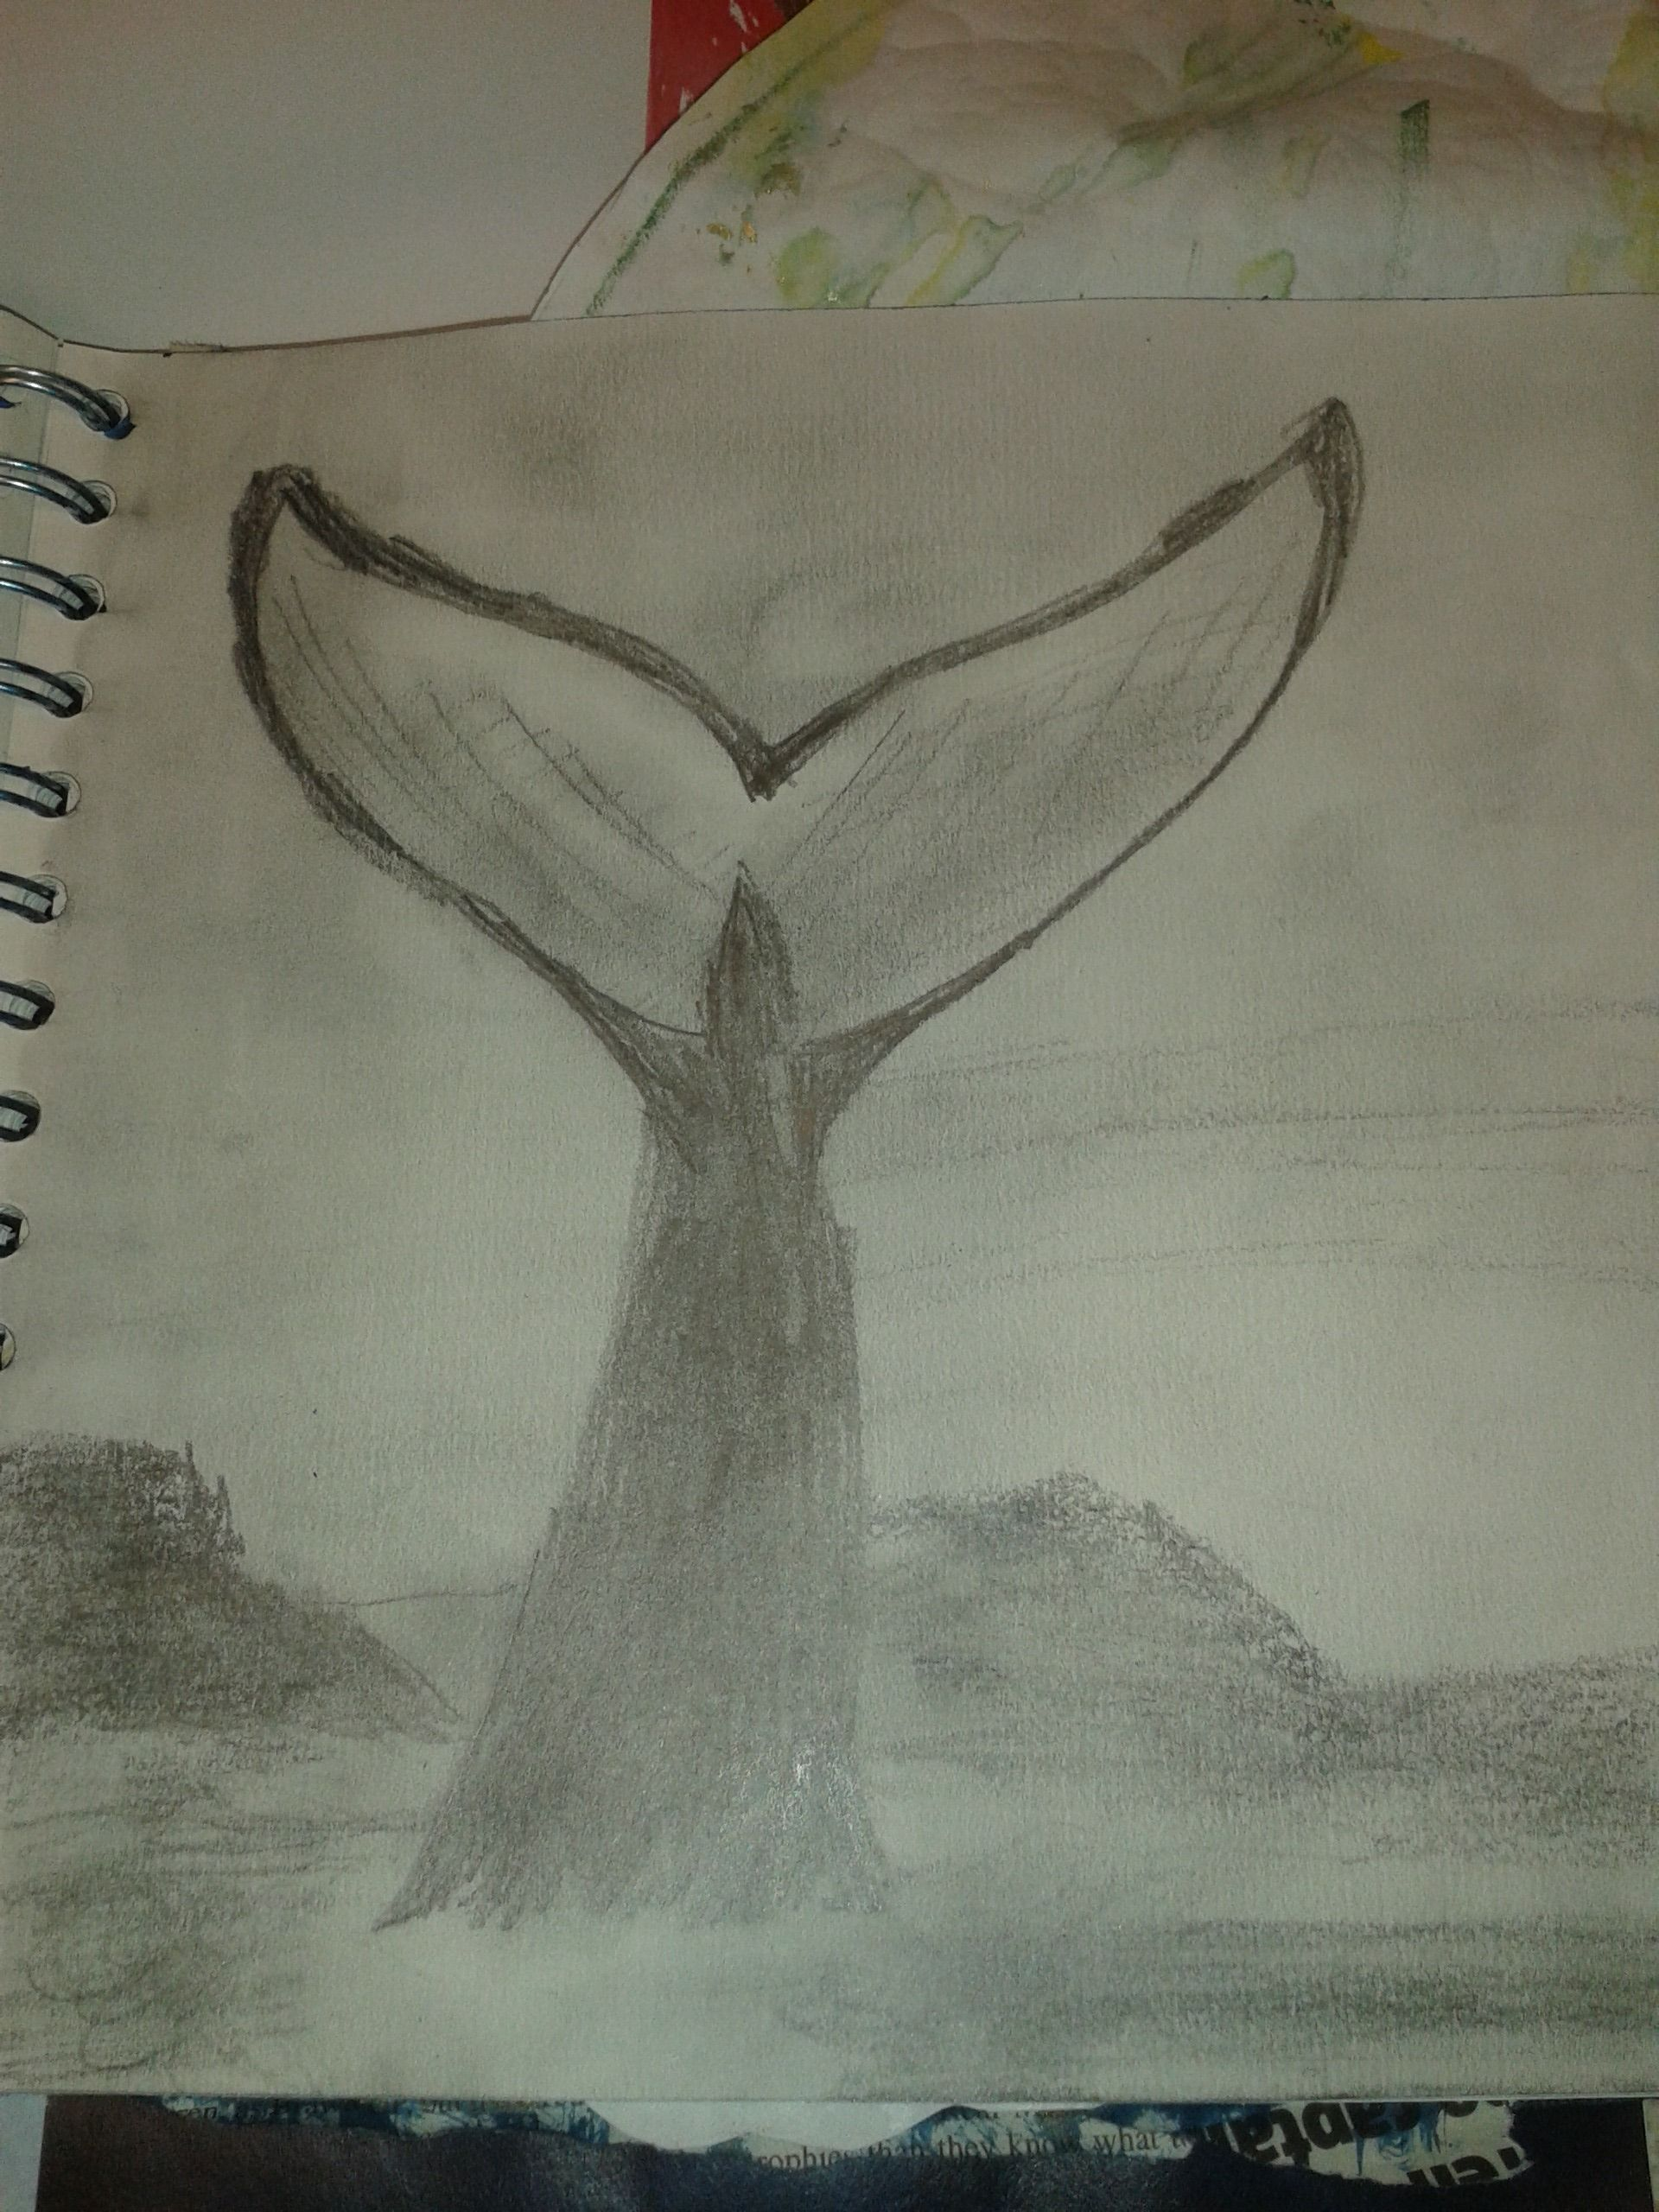 Sketchbook page whale tail pencil drawing ideas for boys rooms